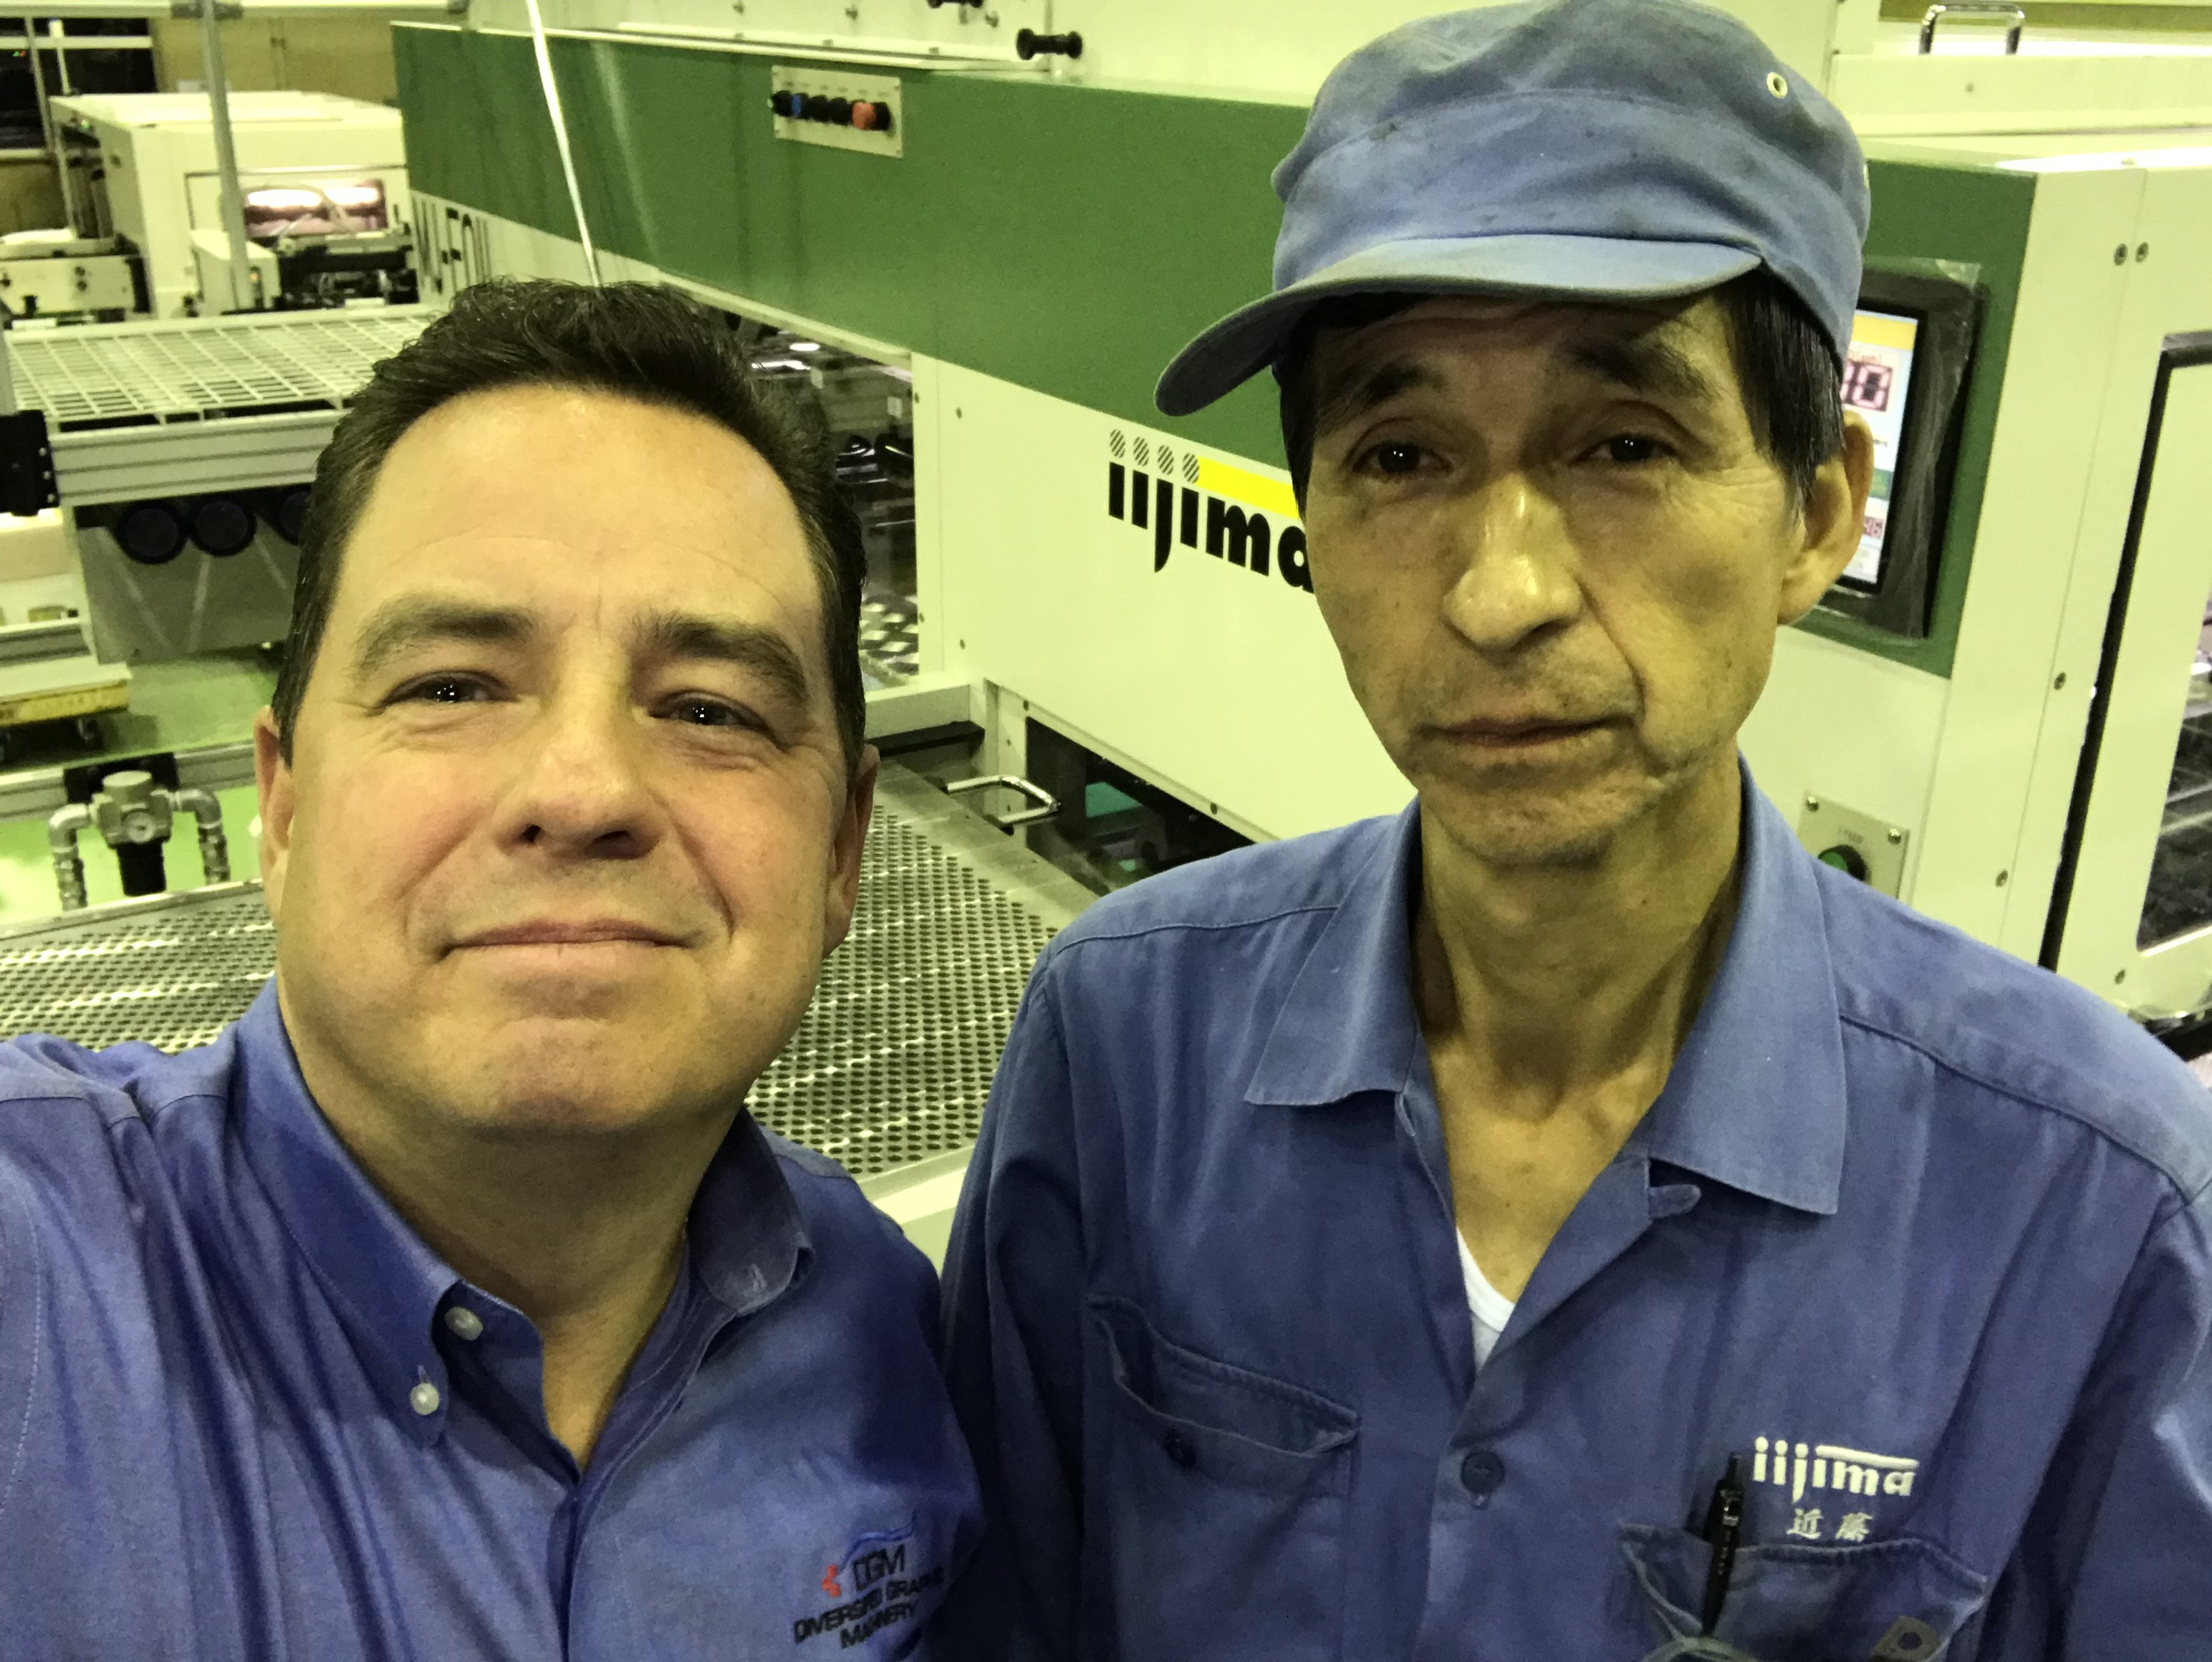 Michael DeBard and Kondo San at the Iijima Factory in Koga Japan